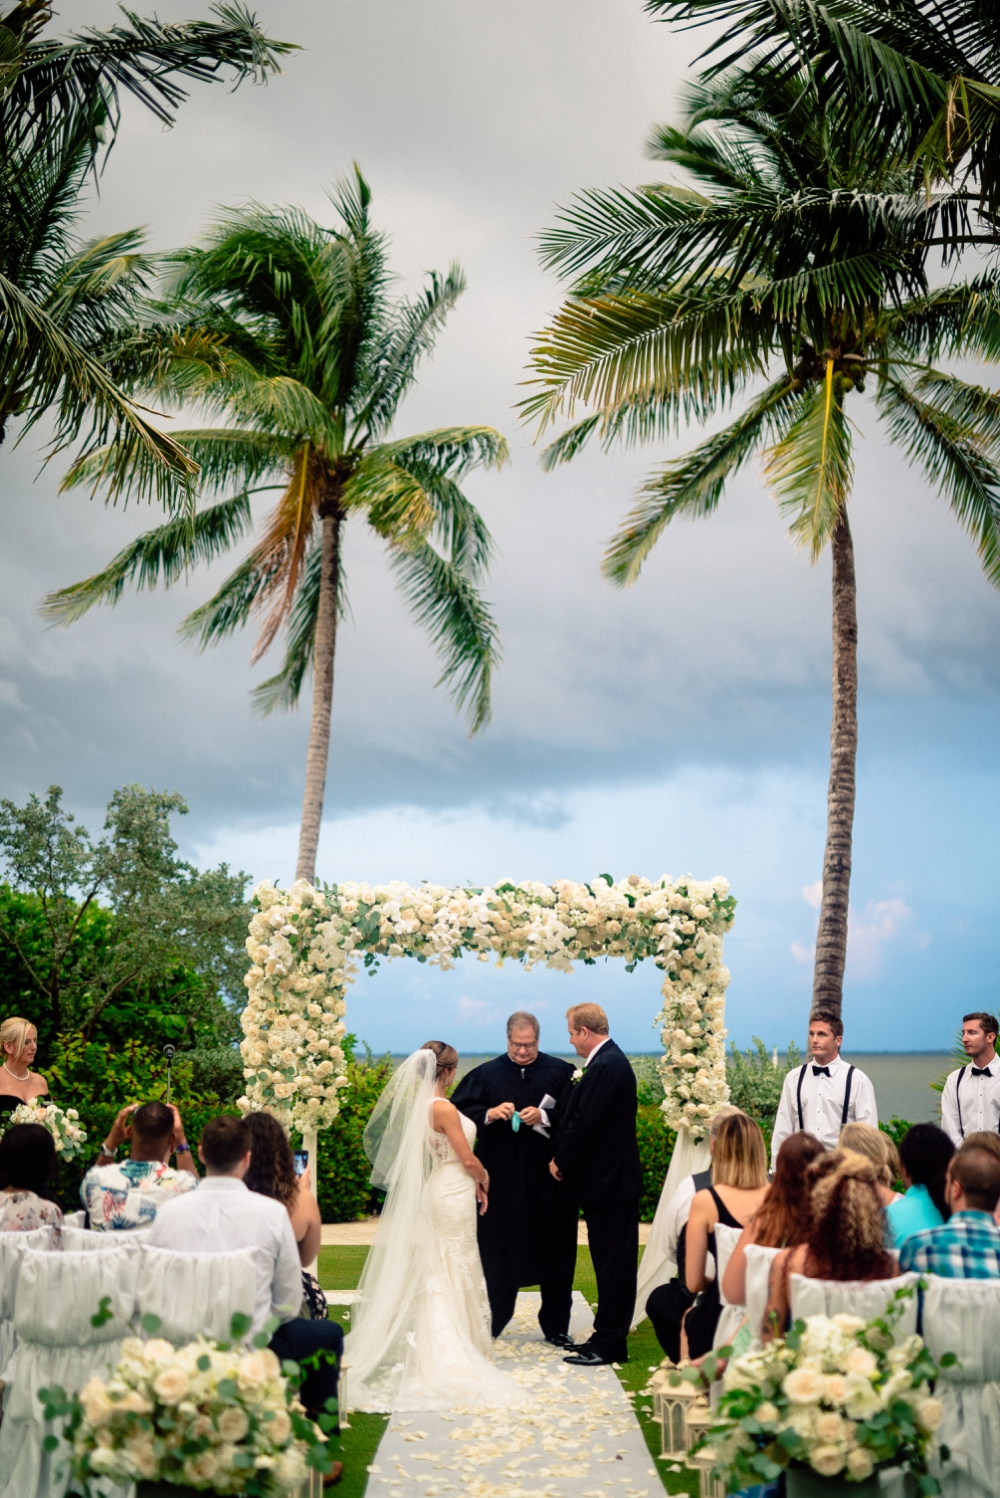 Kelly McWilliams Weddings Matt Steeves Photography Isn't She Lovely Floral South Seas Island Resort Captiva_0035.jpg